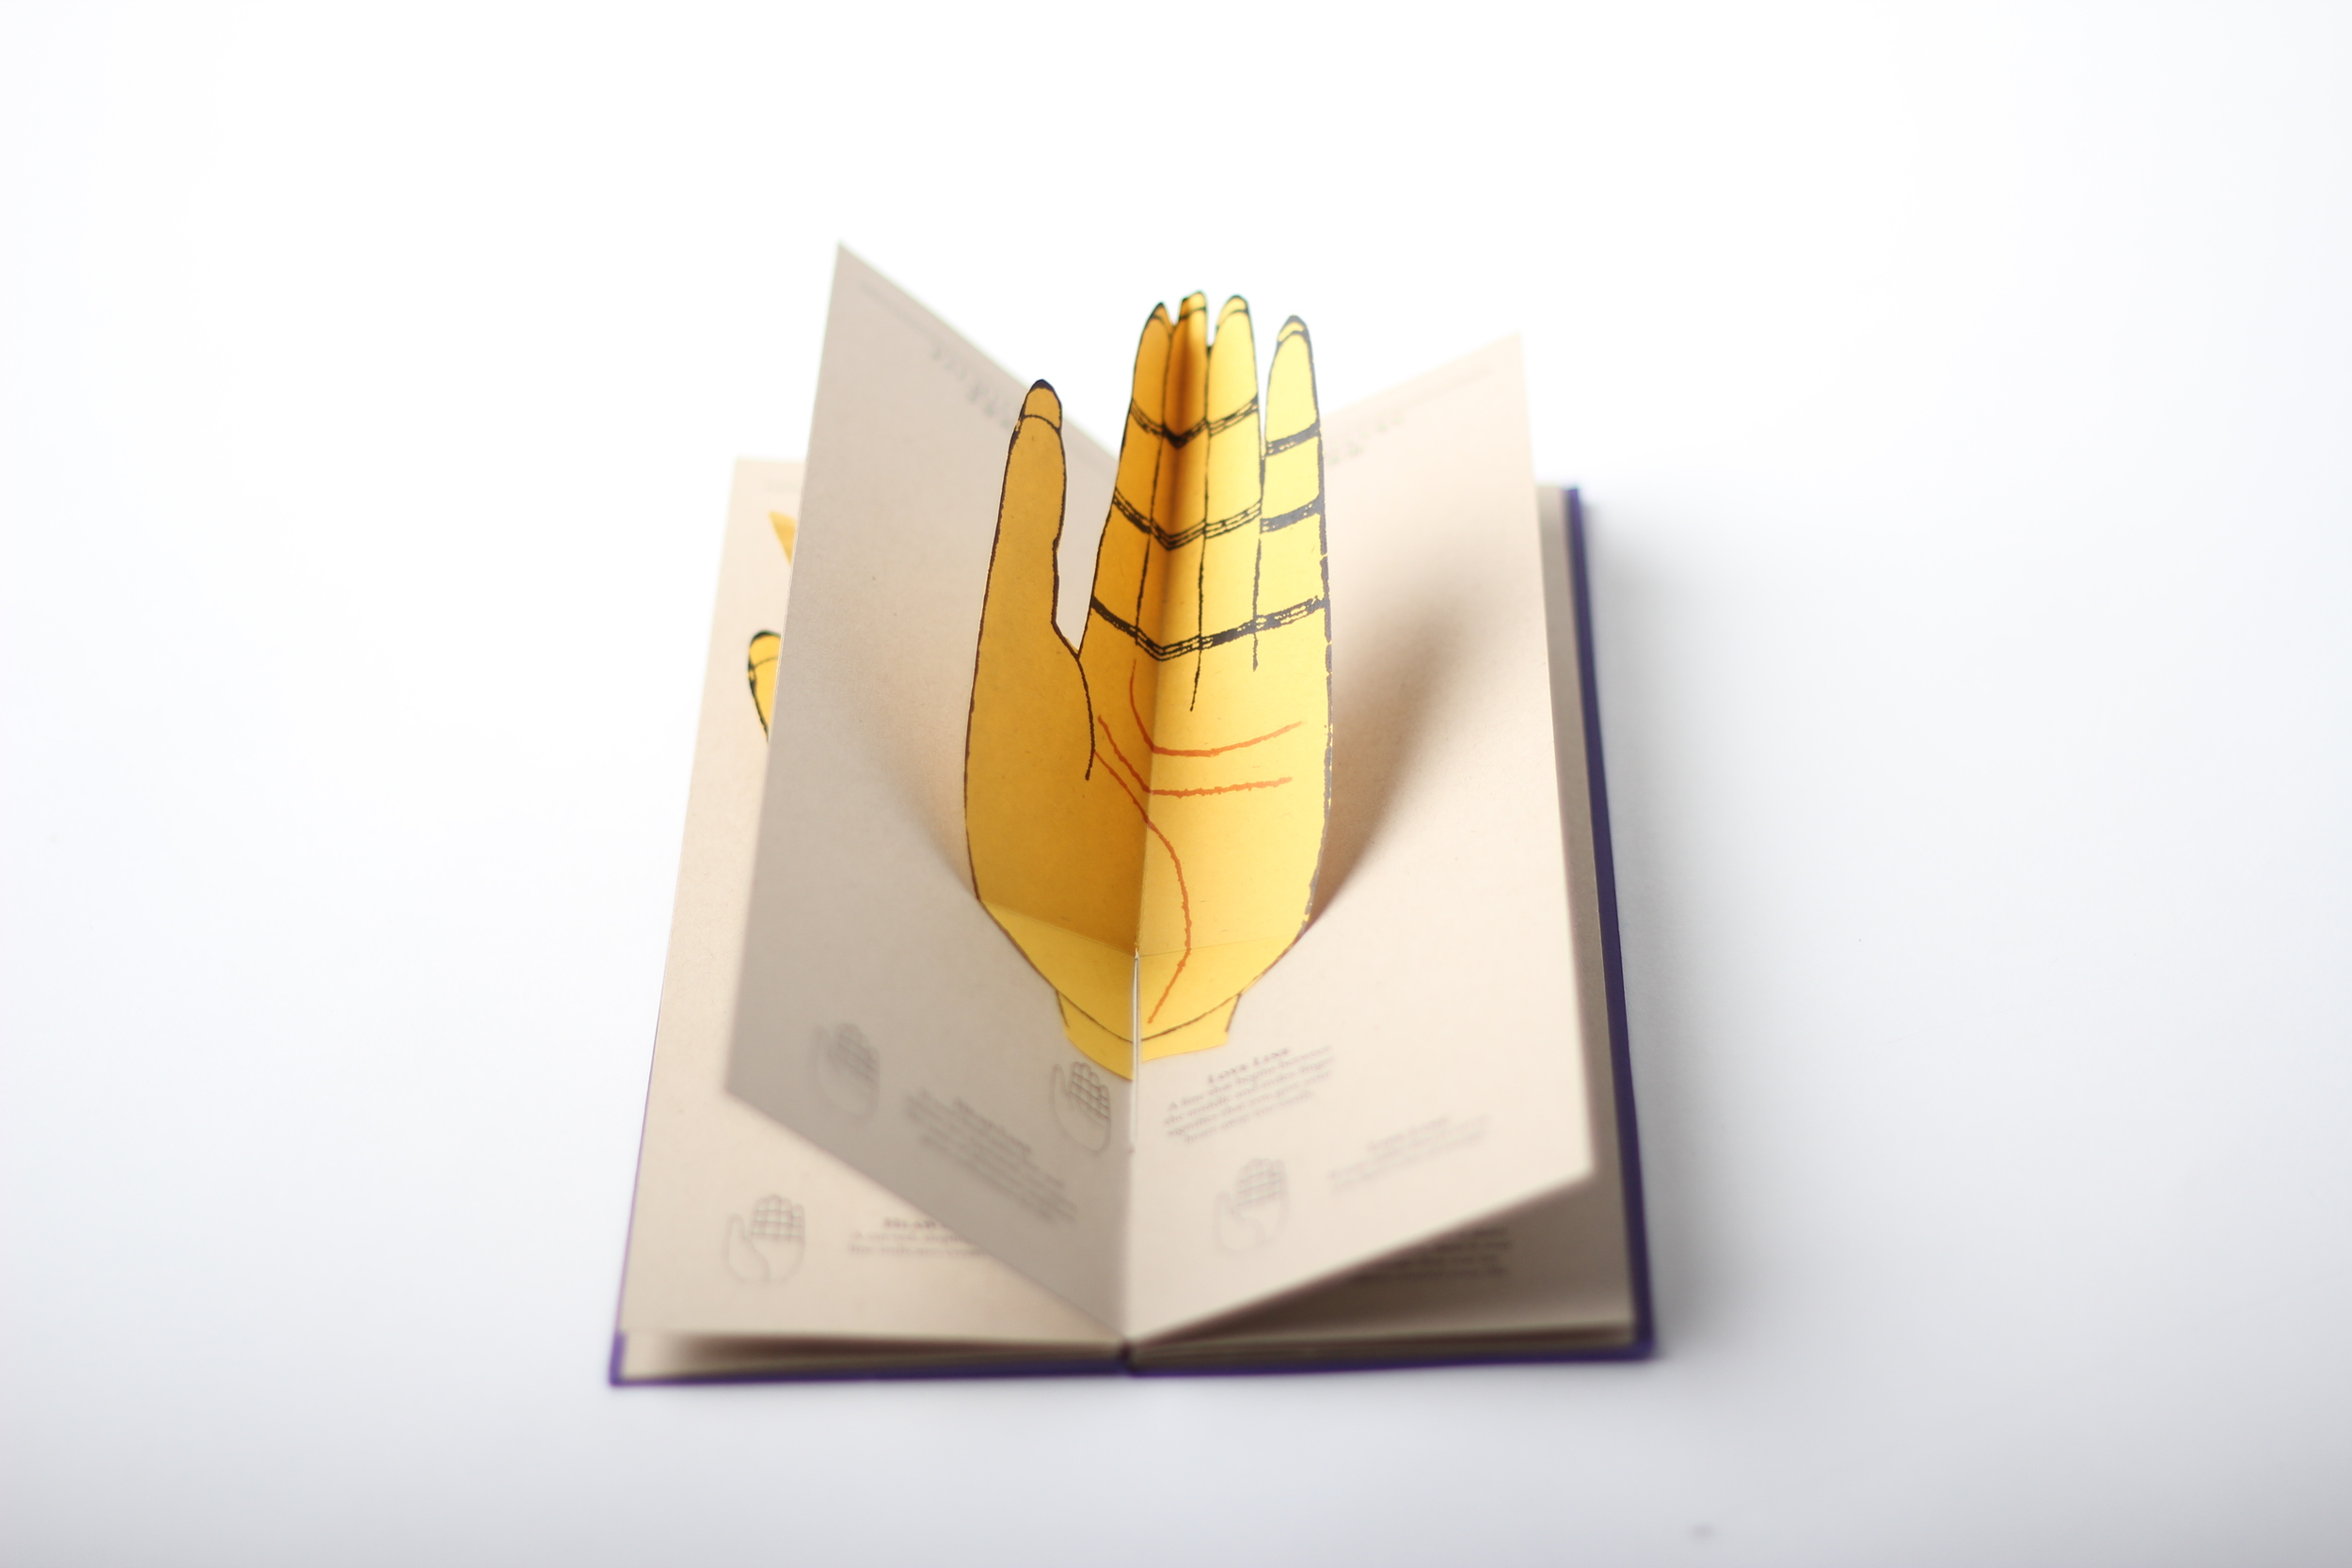 The pop-up device allows the reader to check their palm while reading the book without having to hold it in their palms.